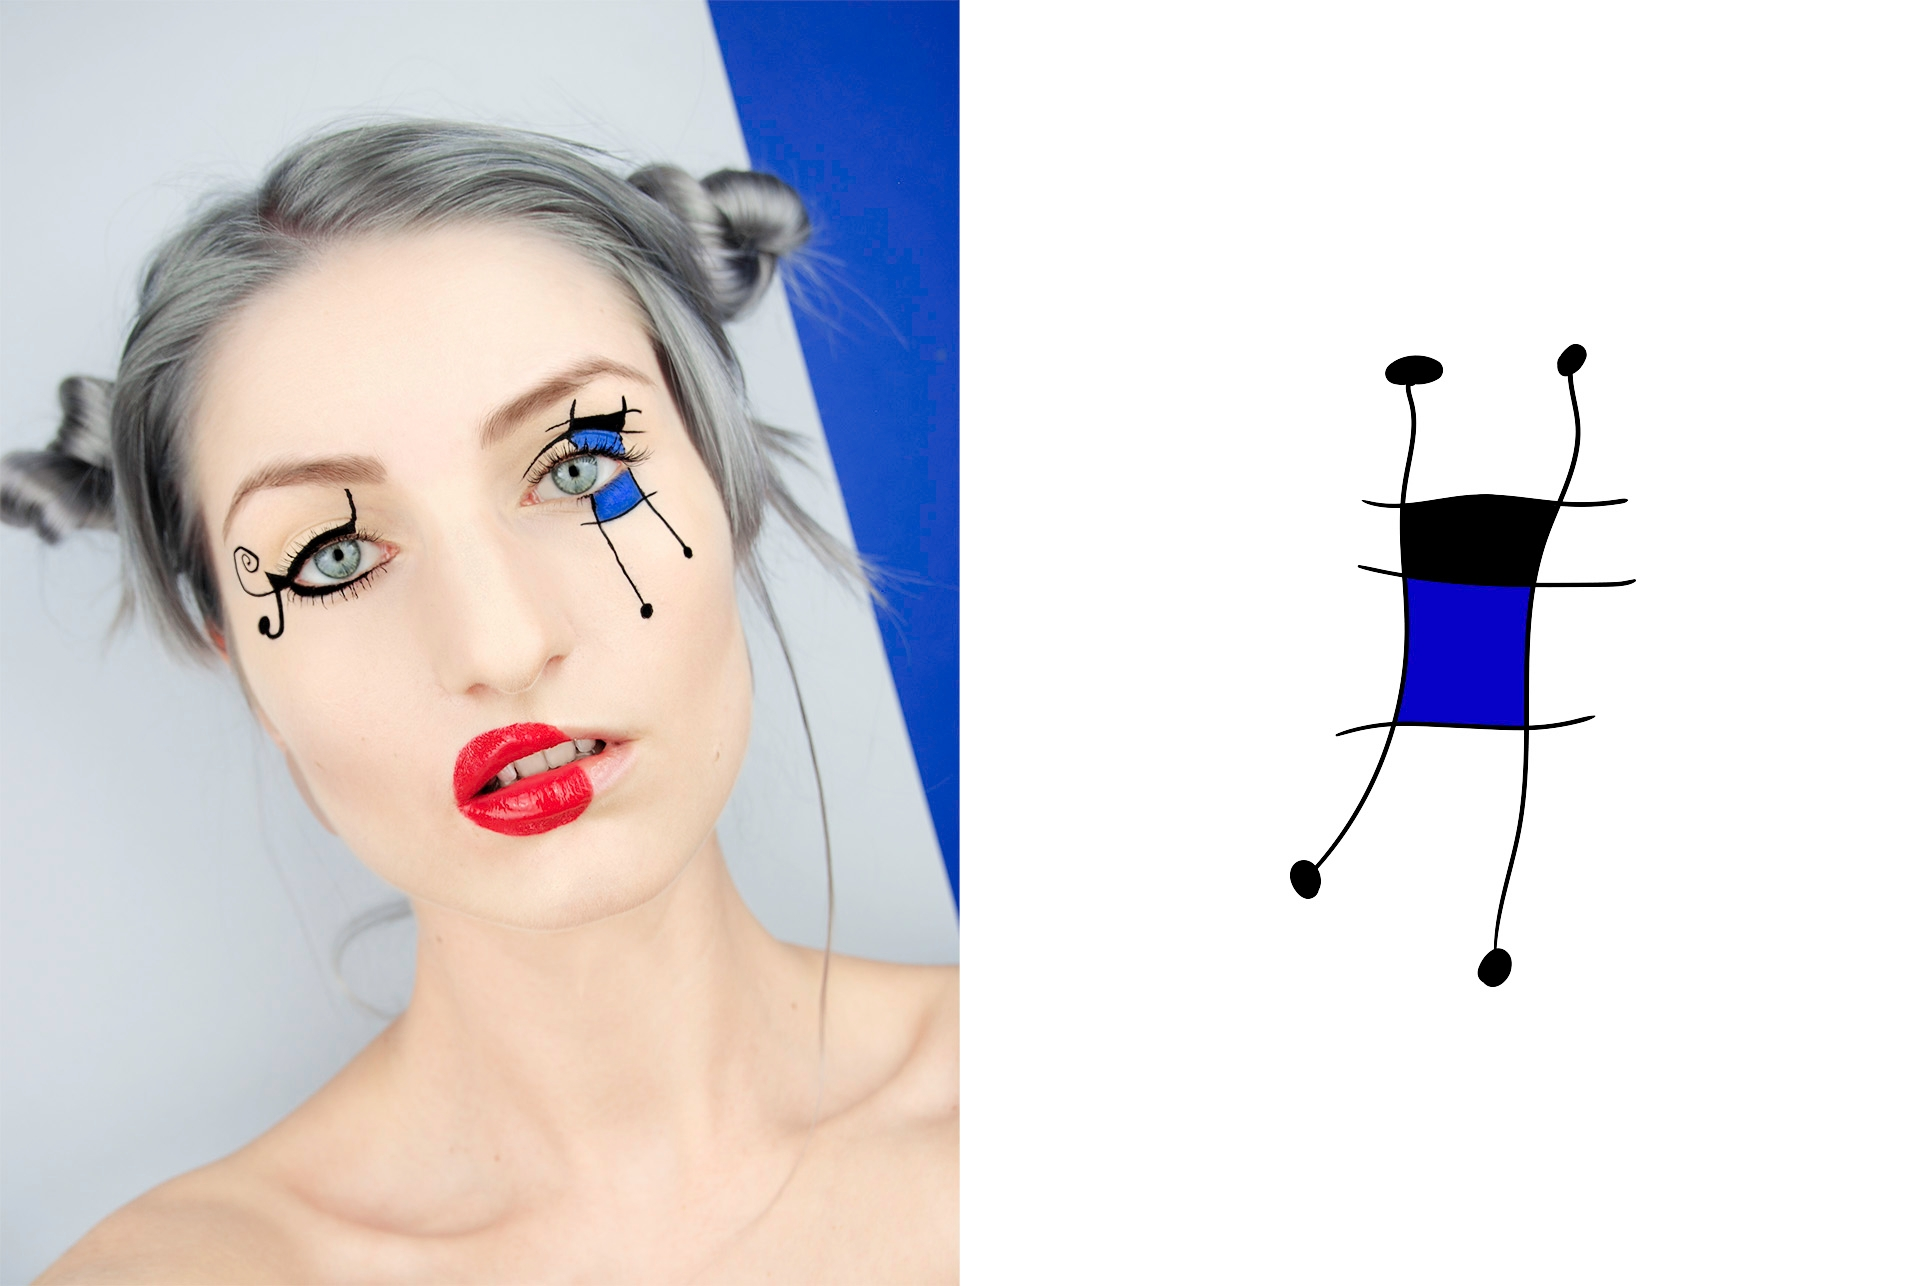 Make-up inspirowany obrazem. 'Figure, Dog, Birds' by Joan_Miró